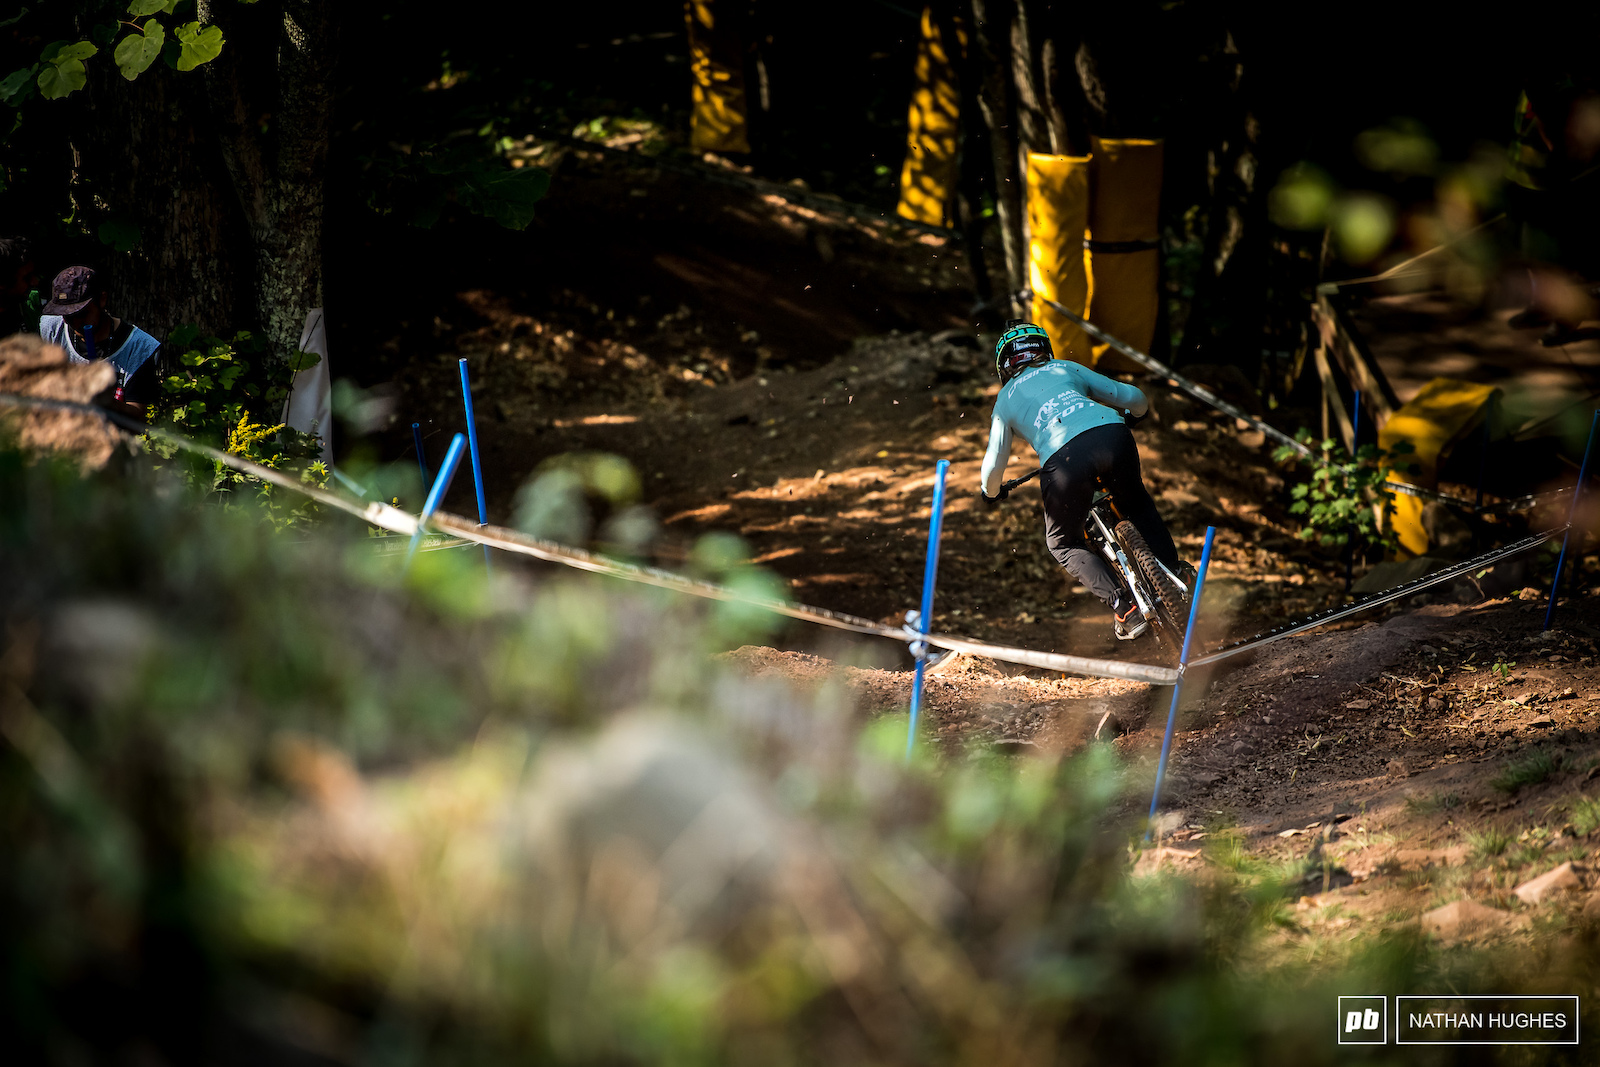 Marine Cabirou charging down the gnarly mid-track chute.